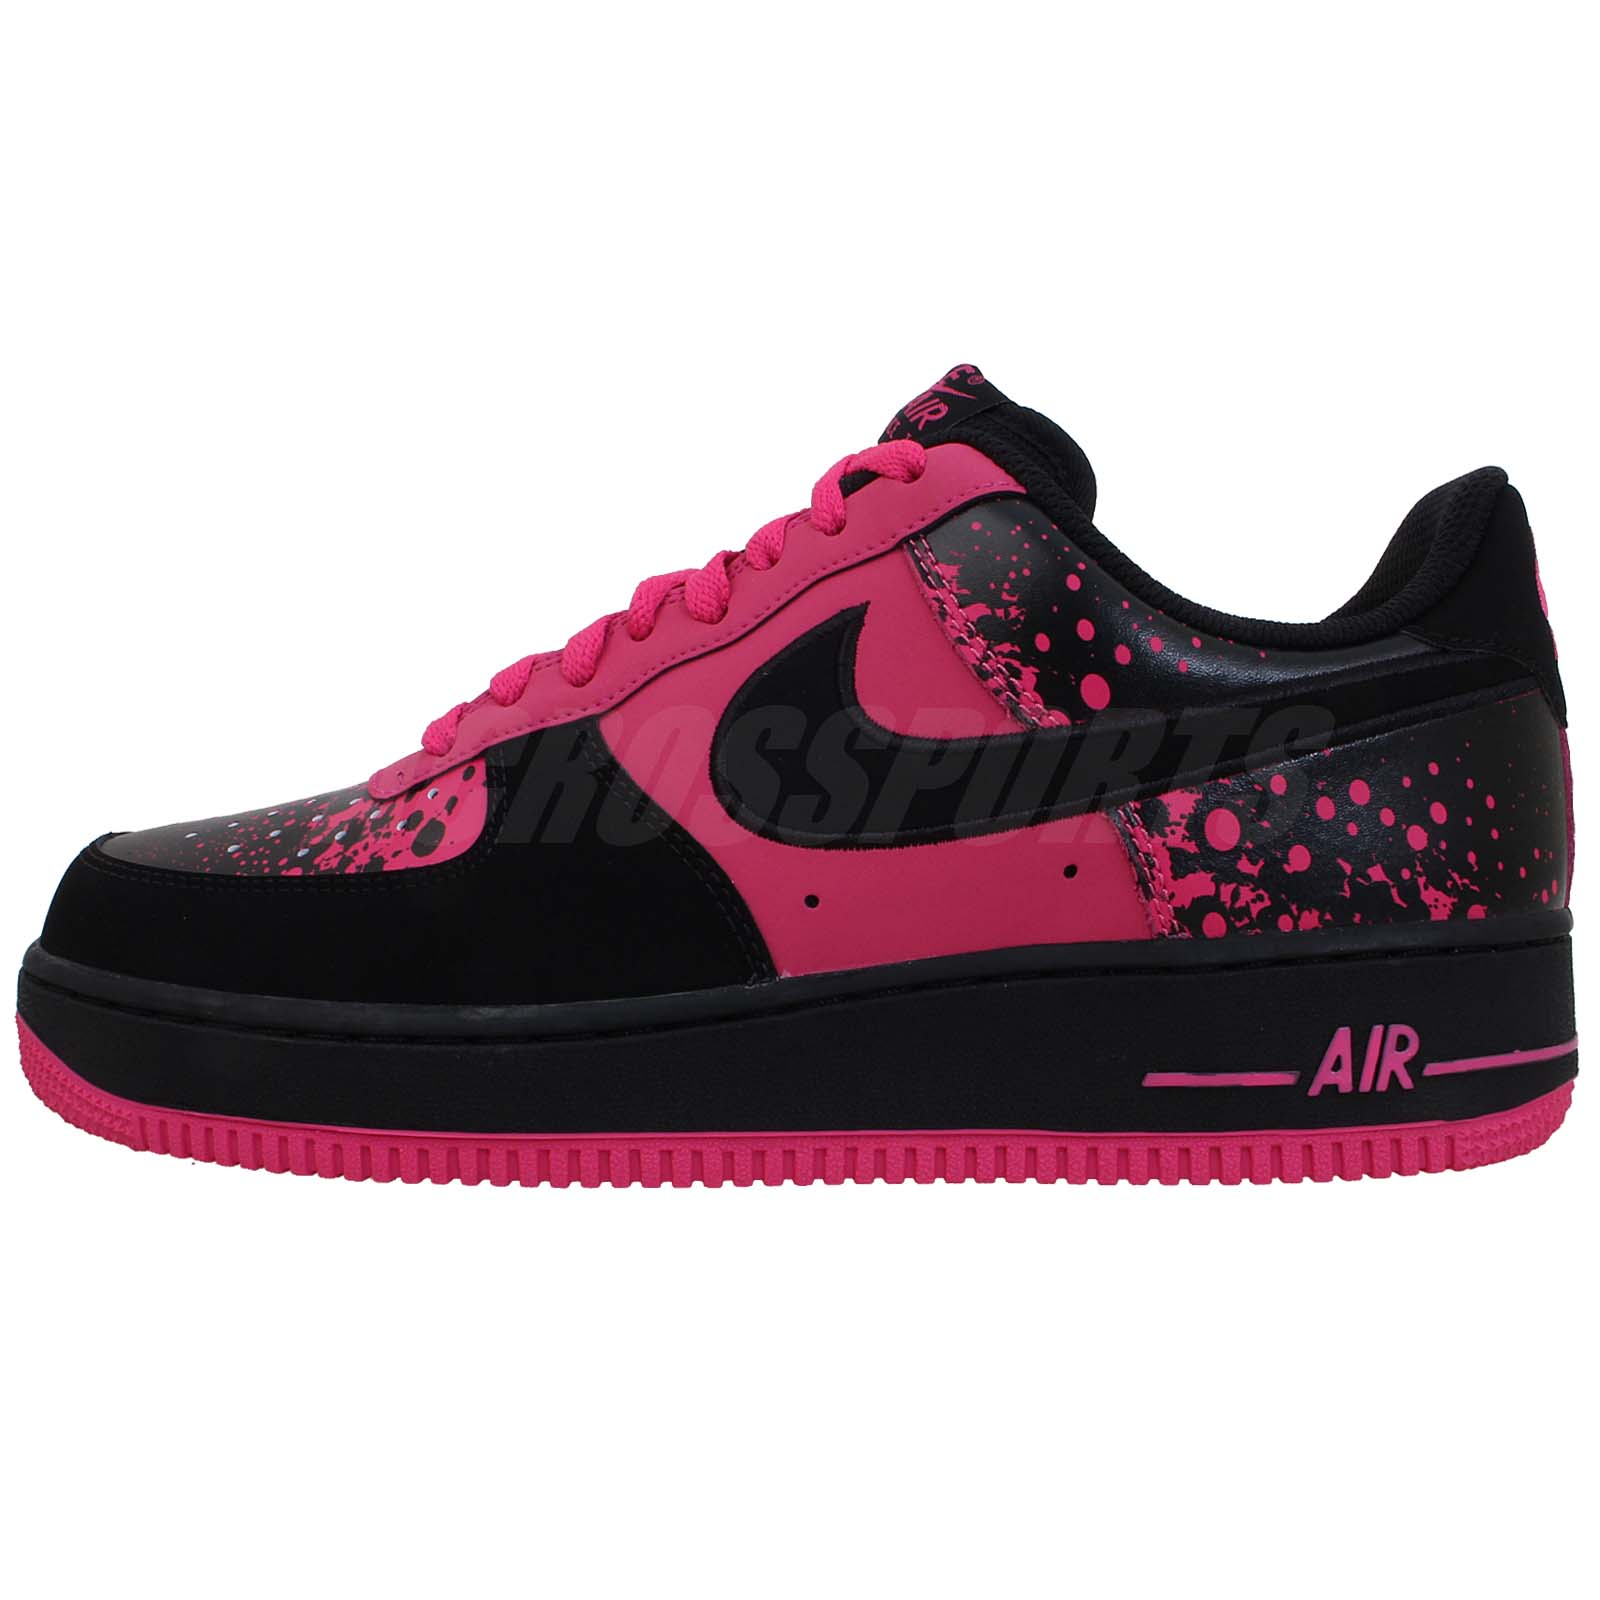 nike air force 1 lava splatter pink black mens classic. Black Bedroom Furniture Sets. Home Design Ideas